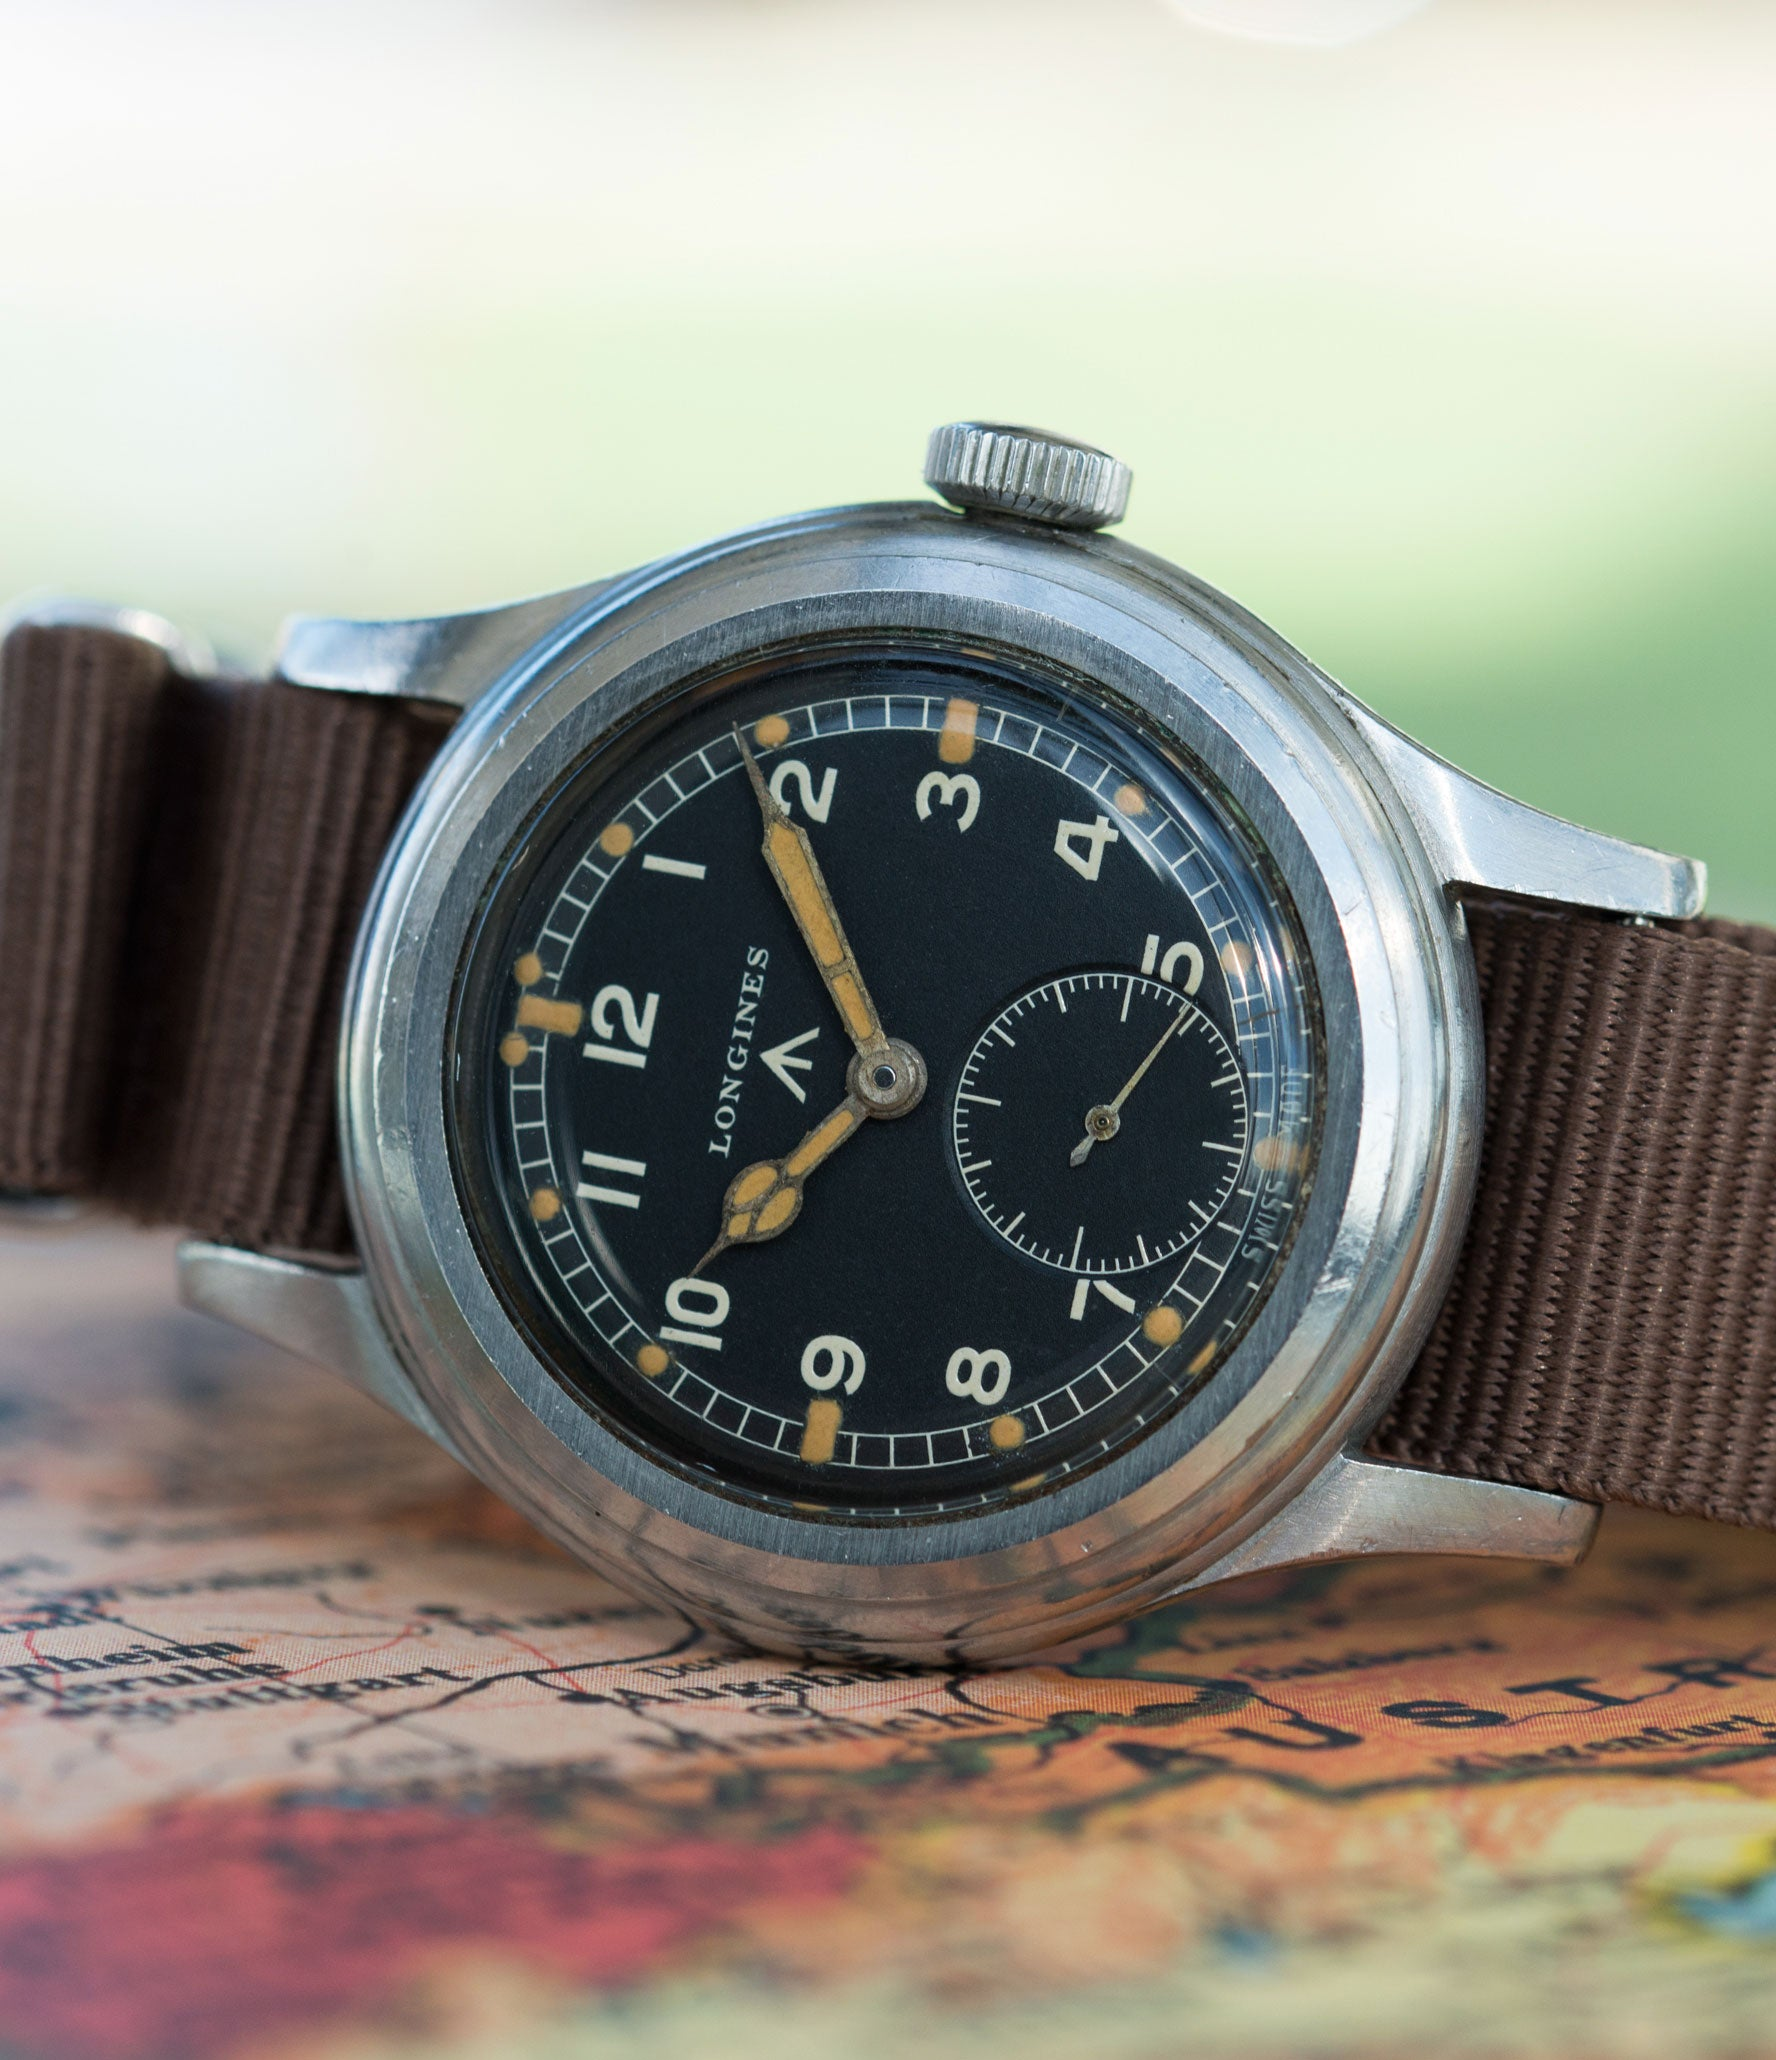 for sale Longines W.W.W. Dirty Dozen British military MoD steel chronometer-graded watch for sale online at A Collected Man London vintage military watch specialist